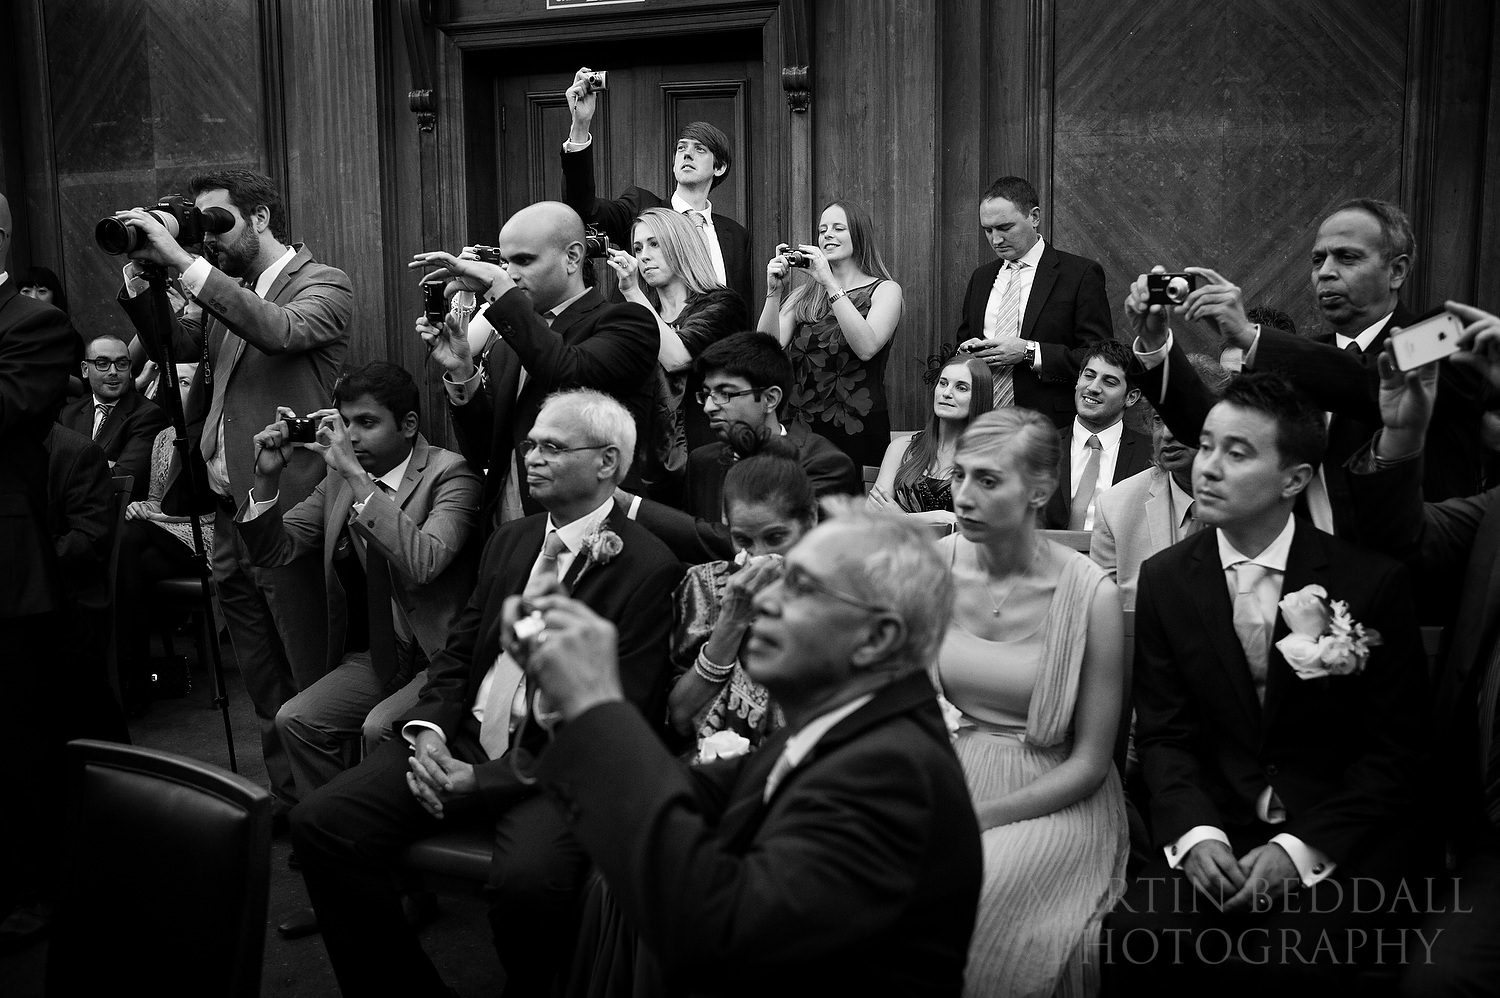 Wedding guests photograph the couple